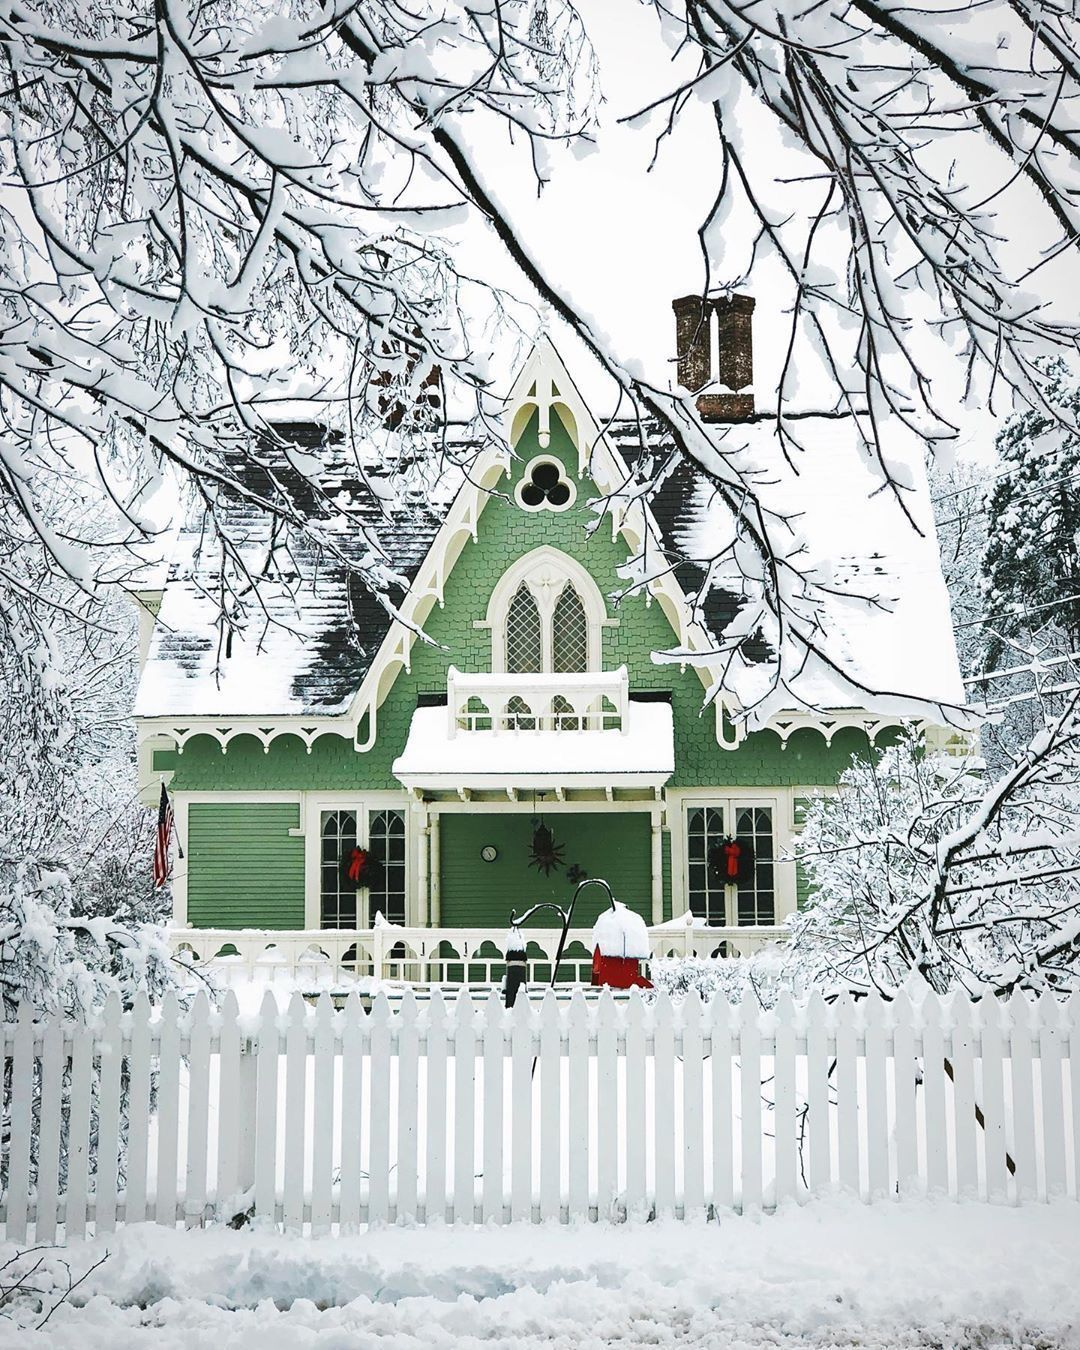 Mint green cottage with white gingerbread trim and picket fence